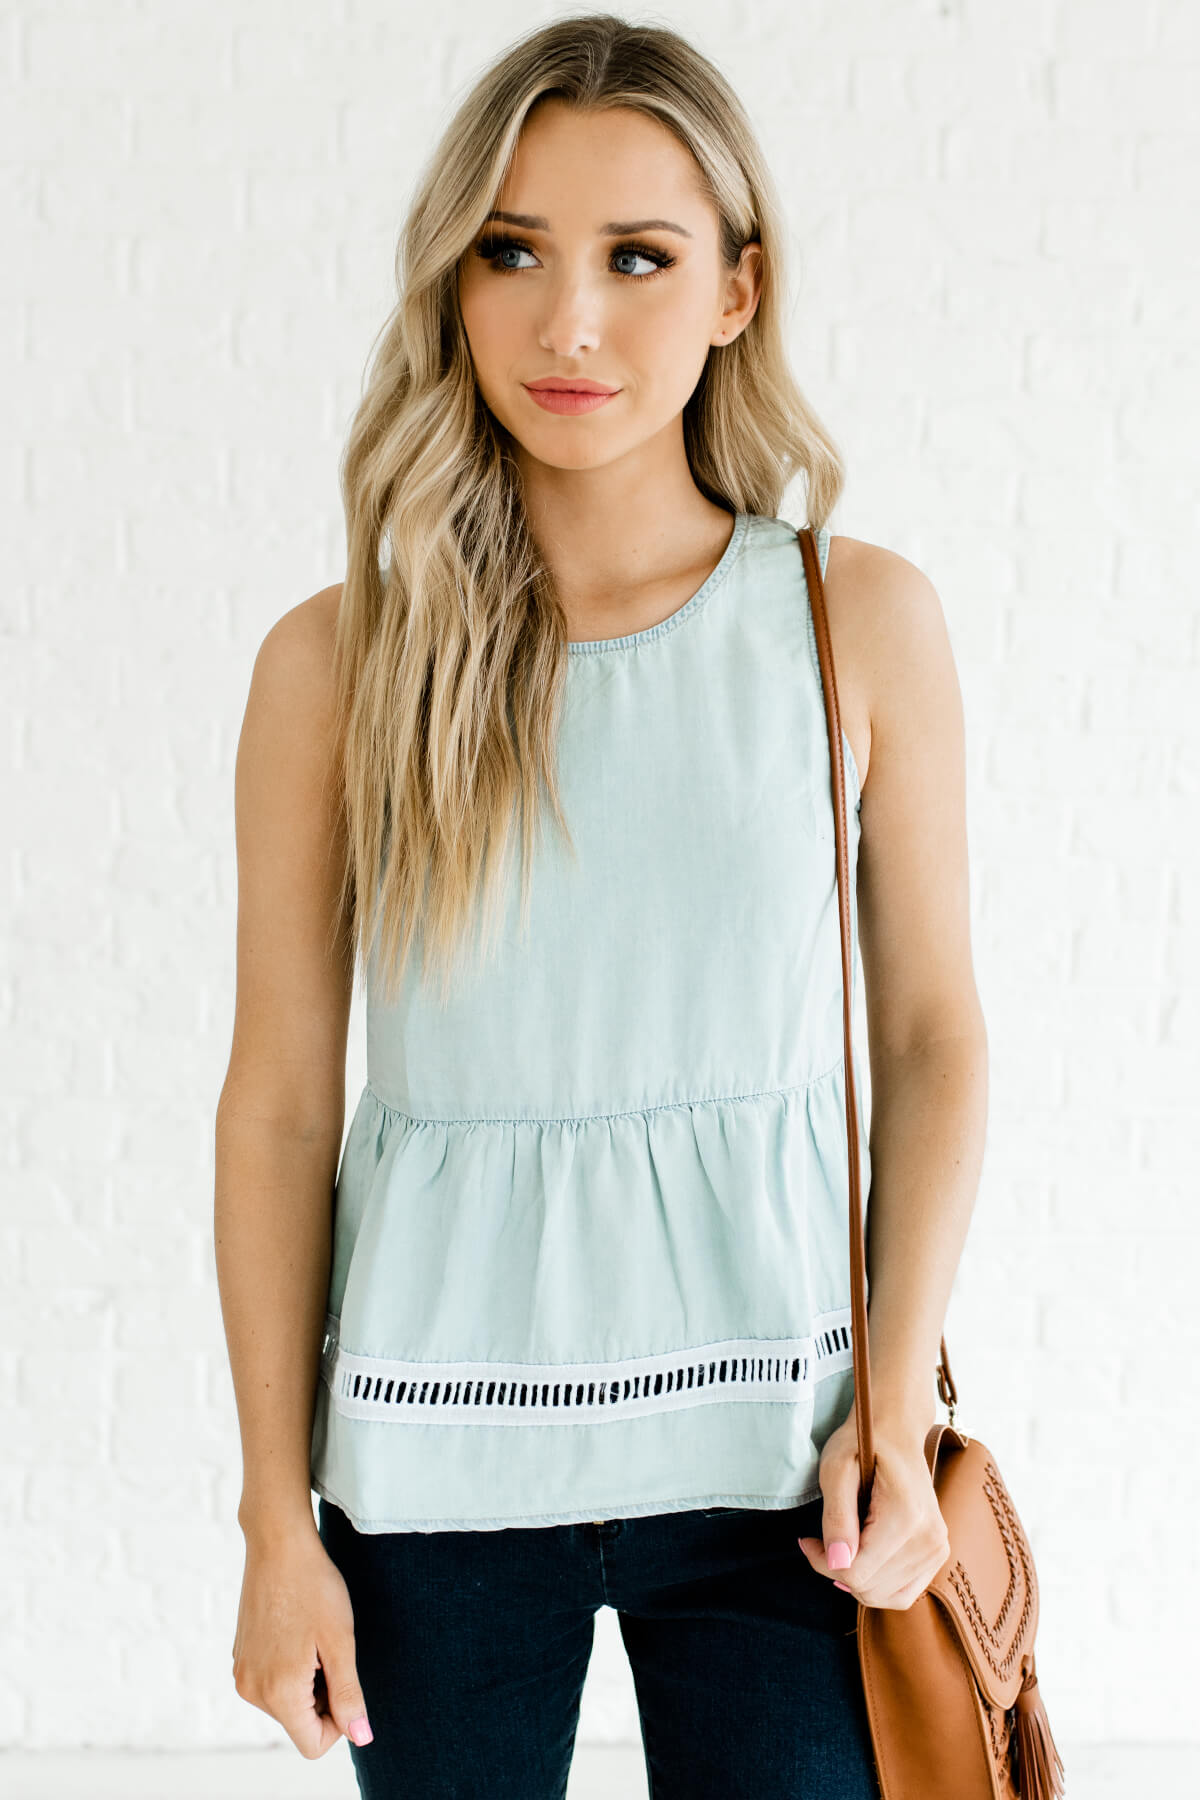 Light Blue Button-Up Back Boutique Tank Tops for Women